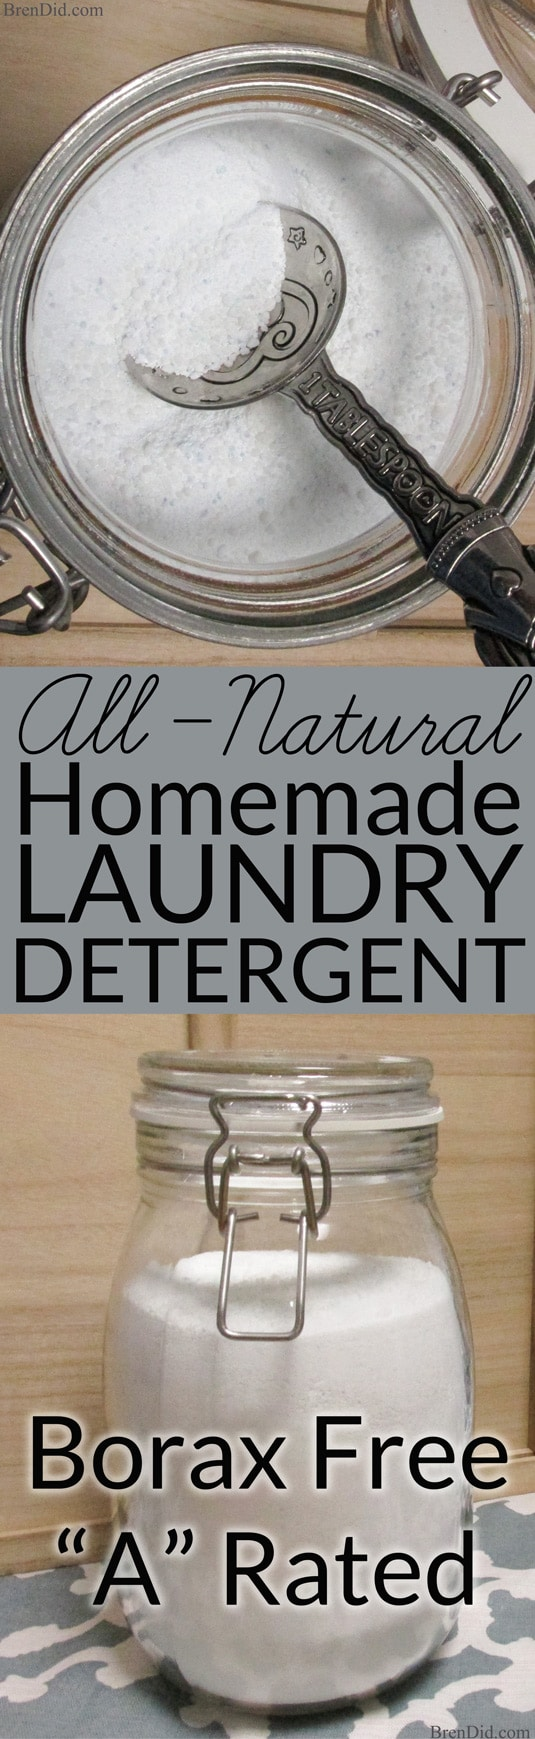 All natural, non-toxic laundry detergent with no borax. Recipe